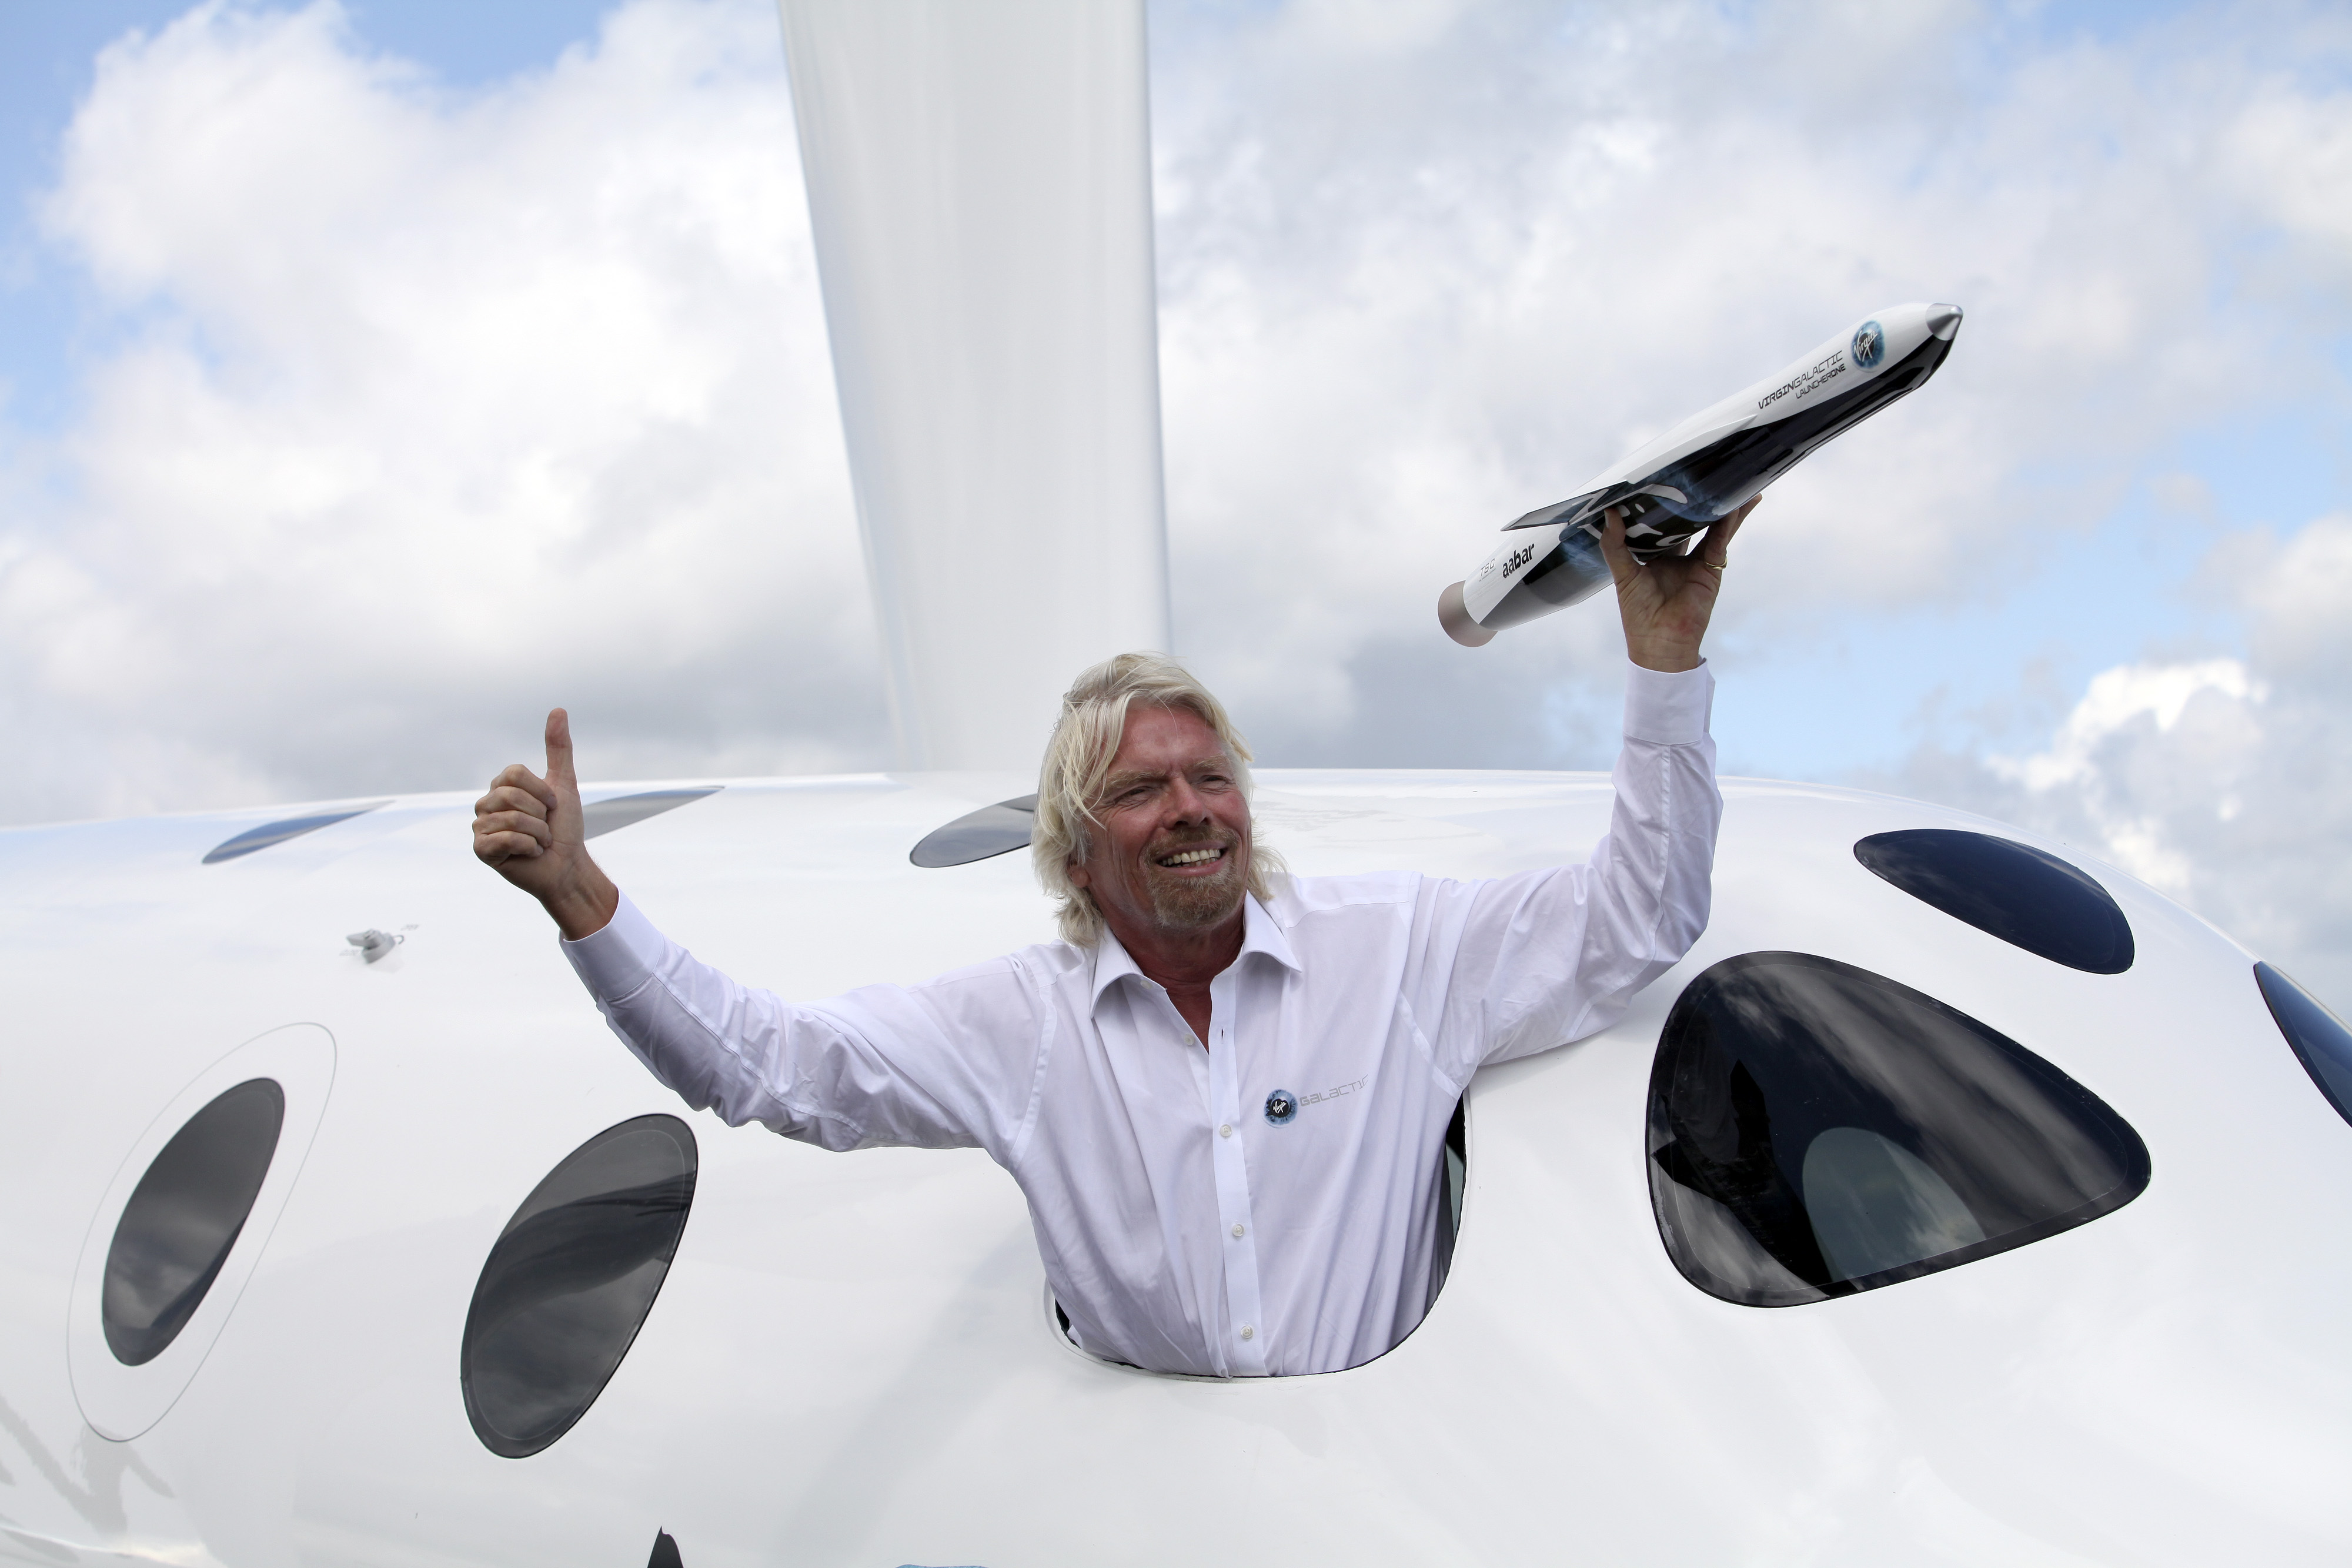 Richard Branson poses for photographers with a model of the LauncherOne rocket from the window of Virgin Galactic's SpaceShipTwo, on the third day of the Farnborough International Air Show in Farnborough, U.K., on Wednesday, July 11, 2012.